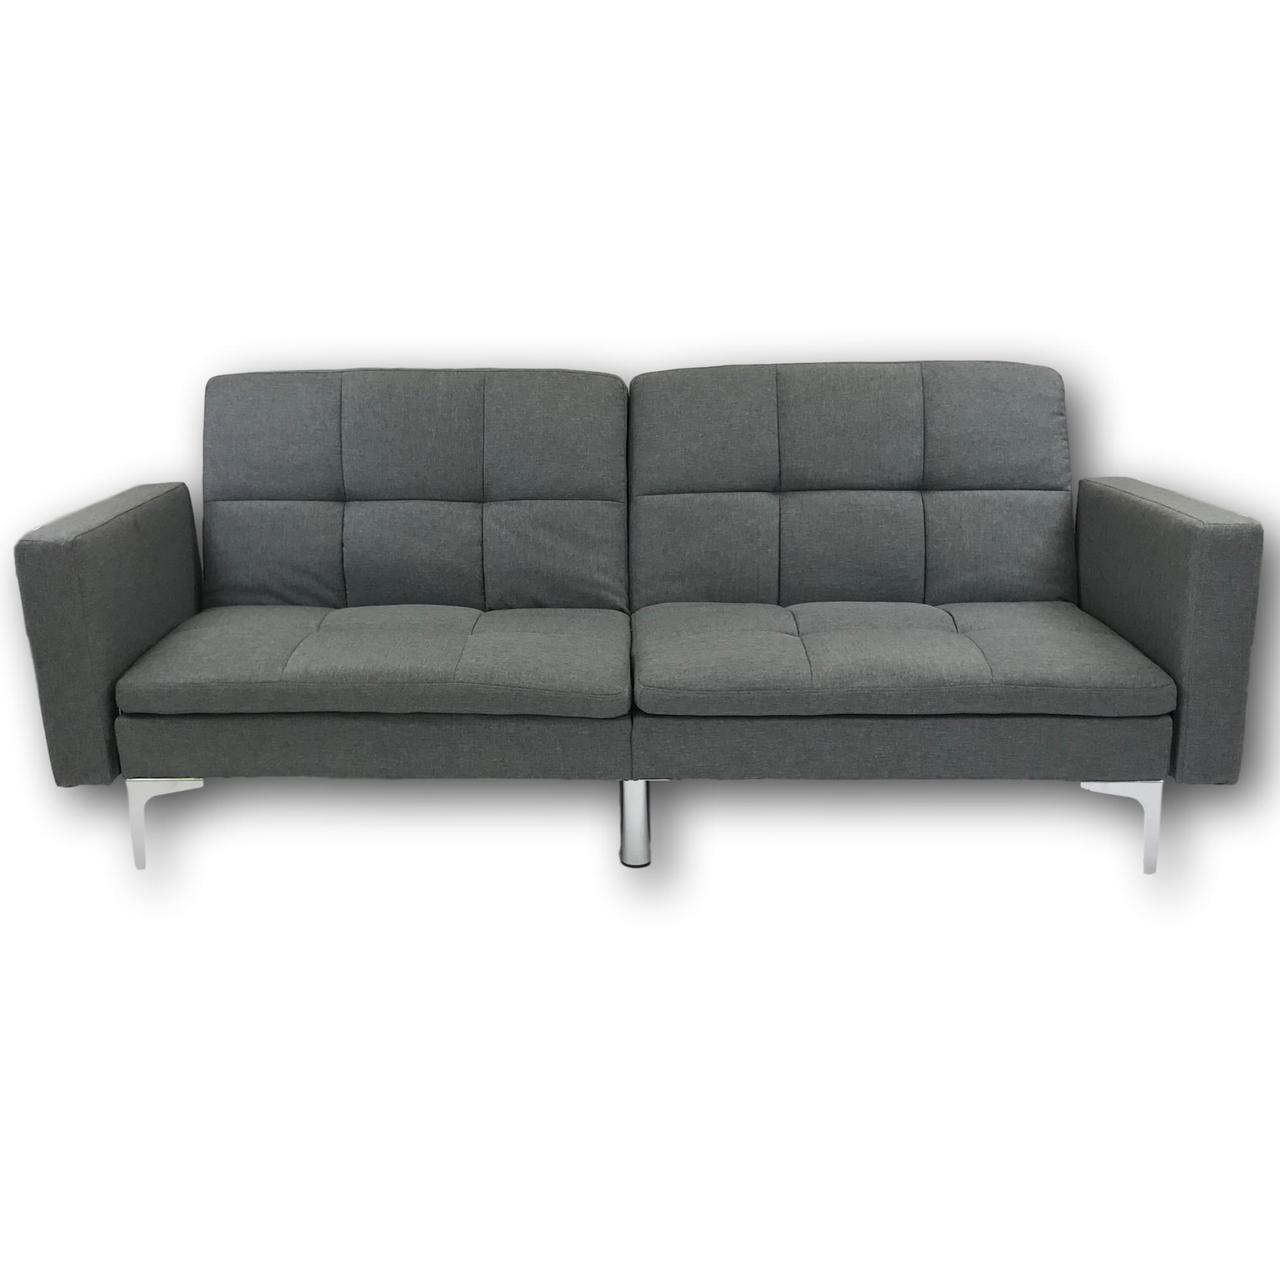 Living Room Furniture Home Spaces Canada